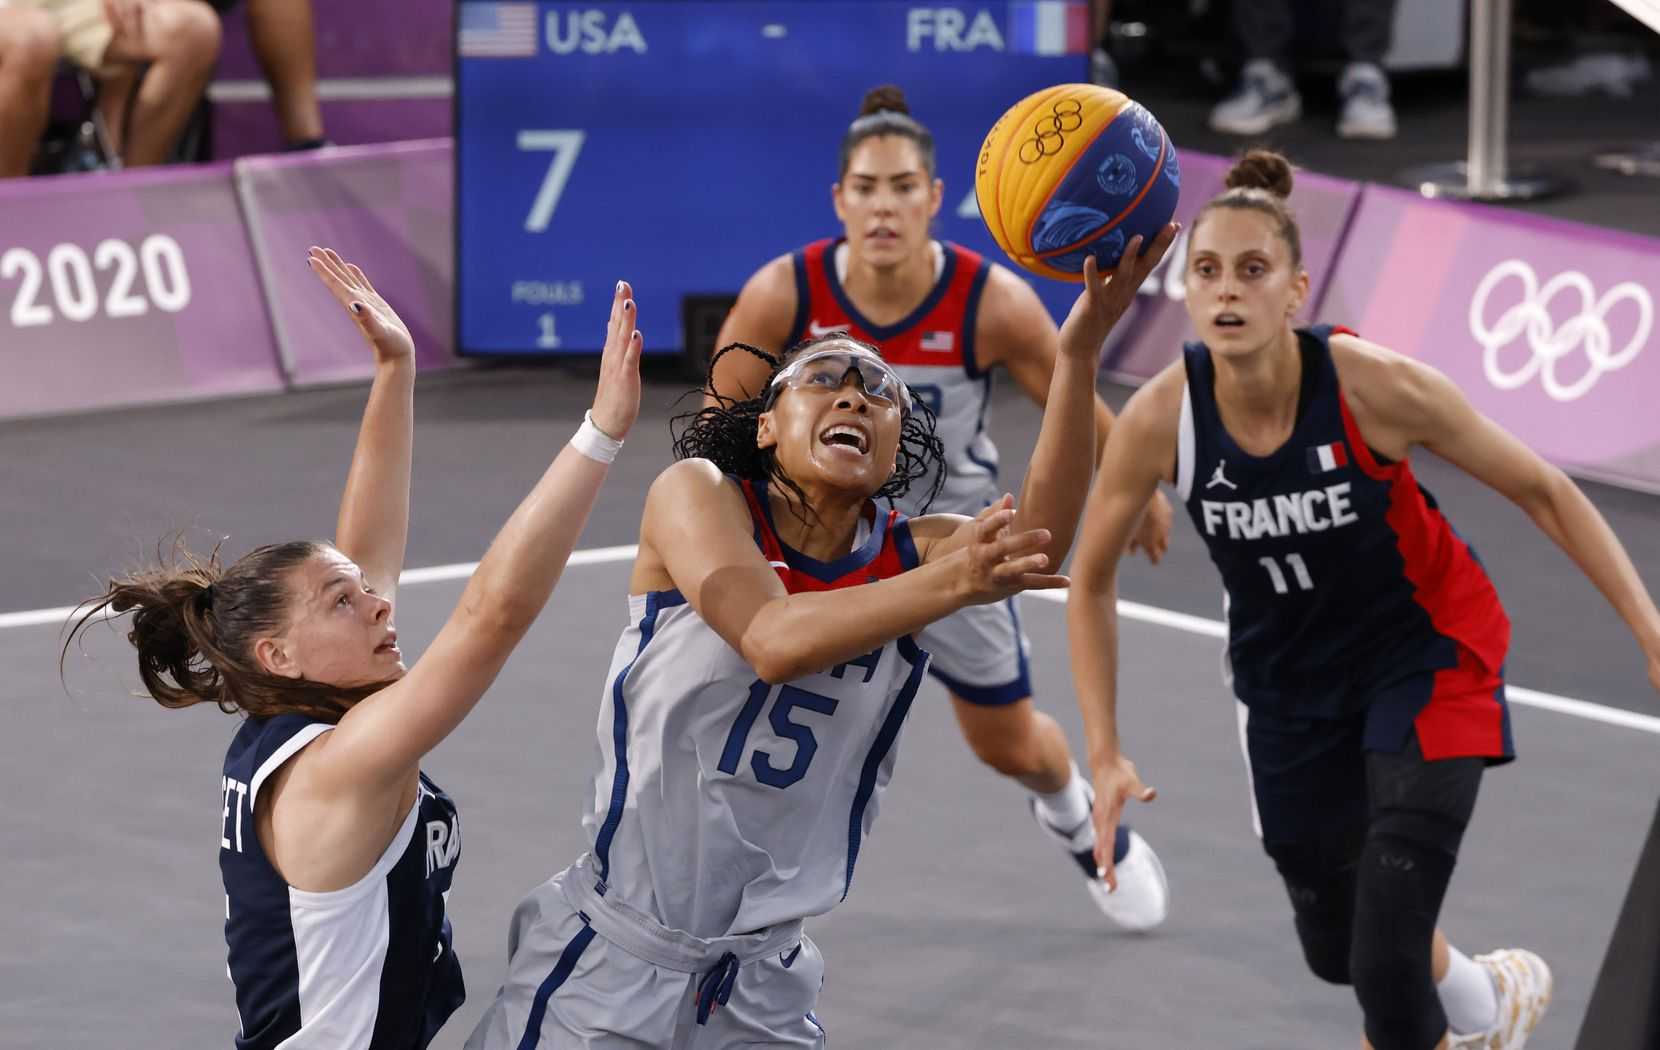 USA's Allisha Gray (15) attempts a shot in front of France's Marie-Eve Paget (5) during a 3x3 women's basketball game during the postponed 2020 Tokyo Olympics at Aomi Urban Sports Park on Saturday, July 24, 2021, in Tokyo, Japan. USA defeated France 17-10 in the game. (Vernon Bryant/The Dallas Morning News)